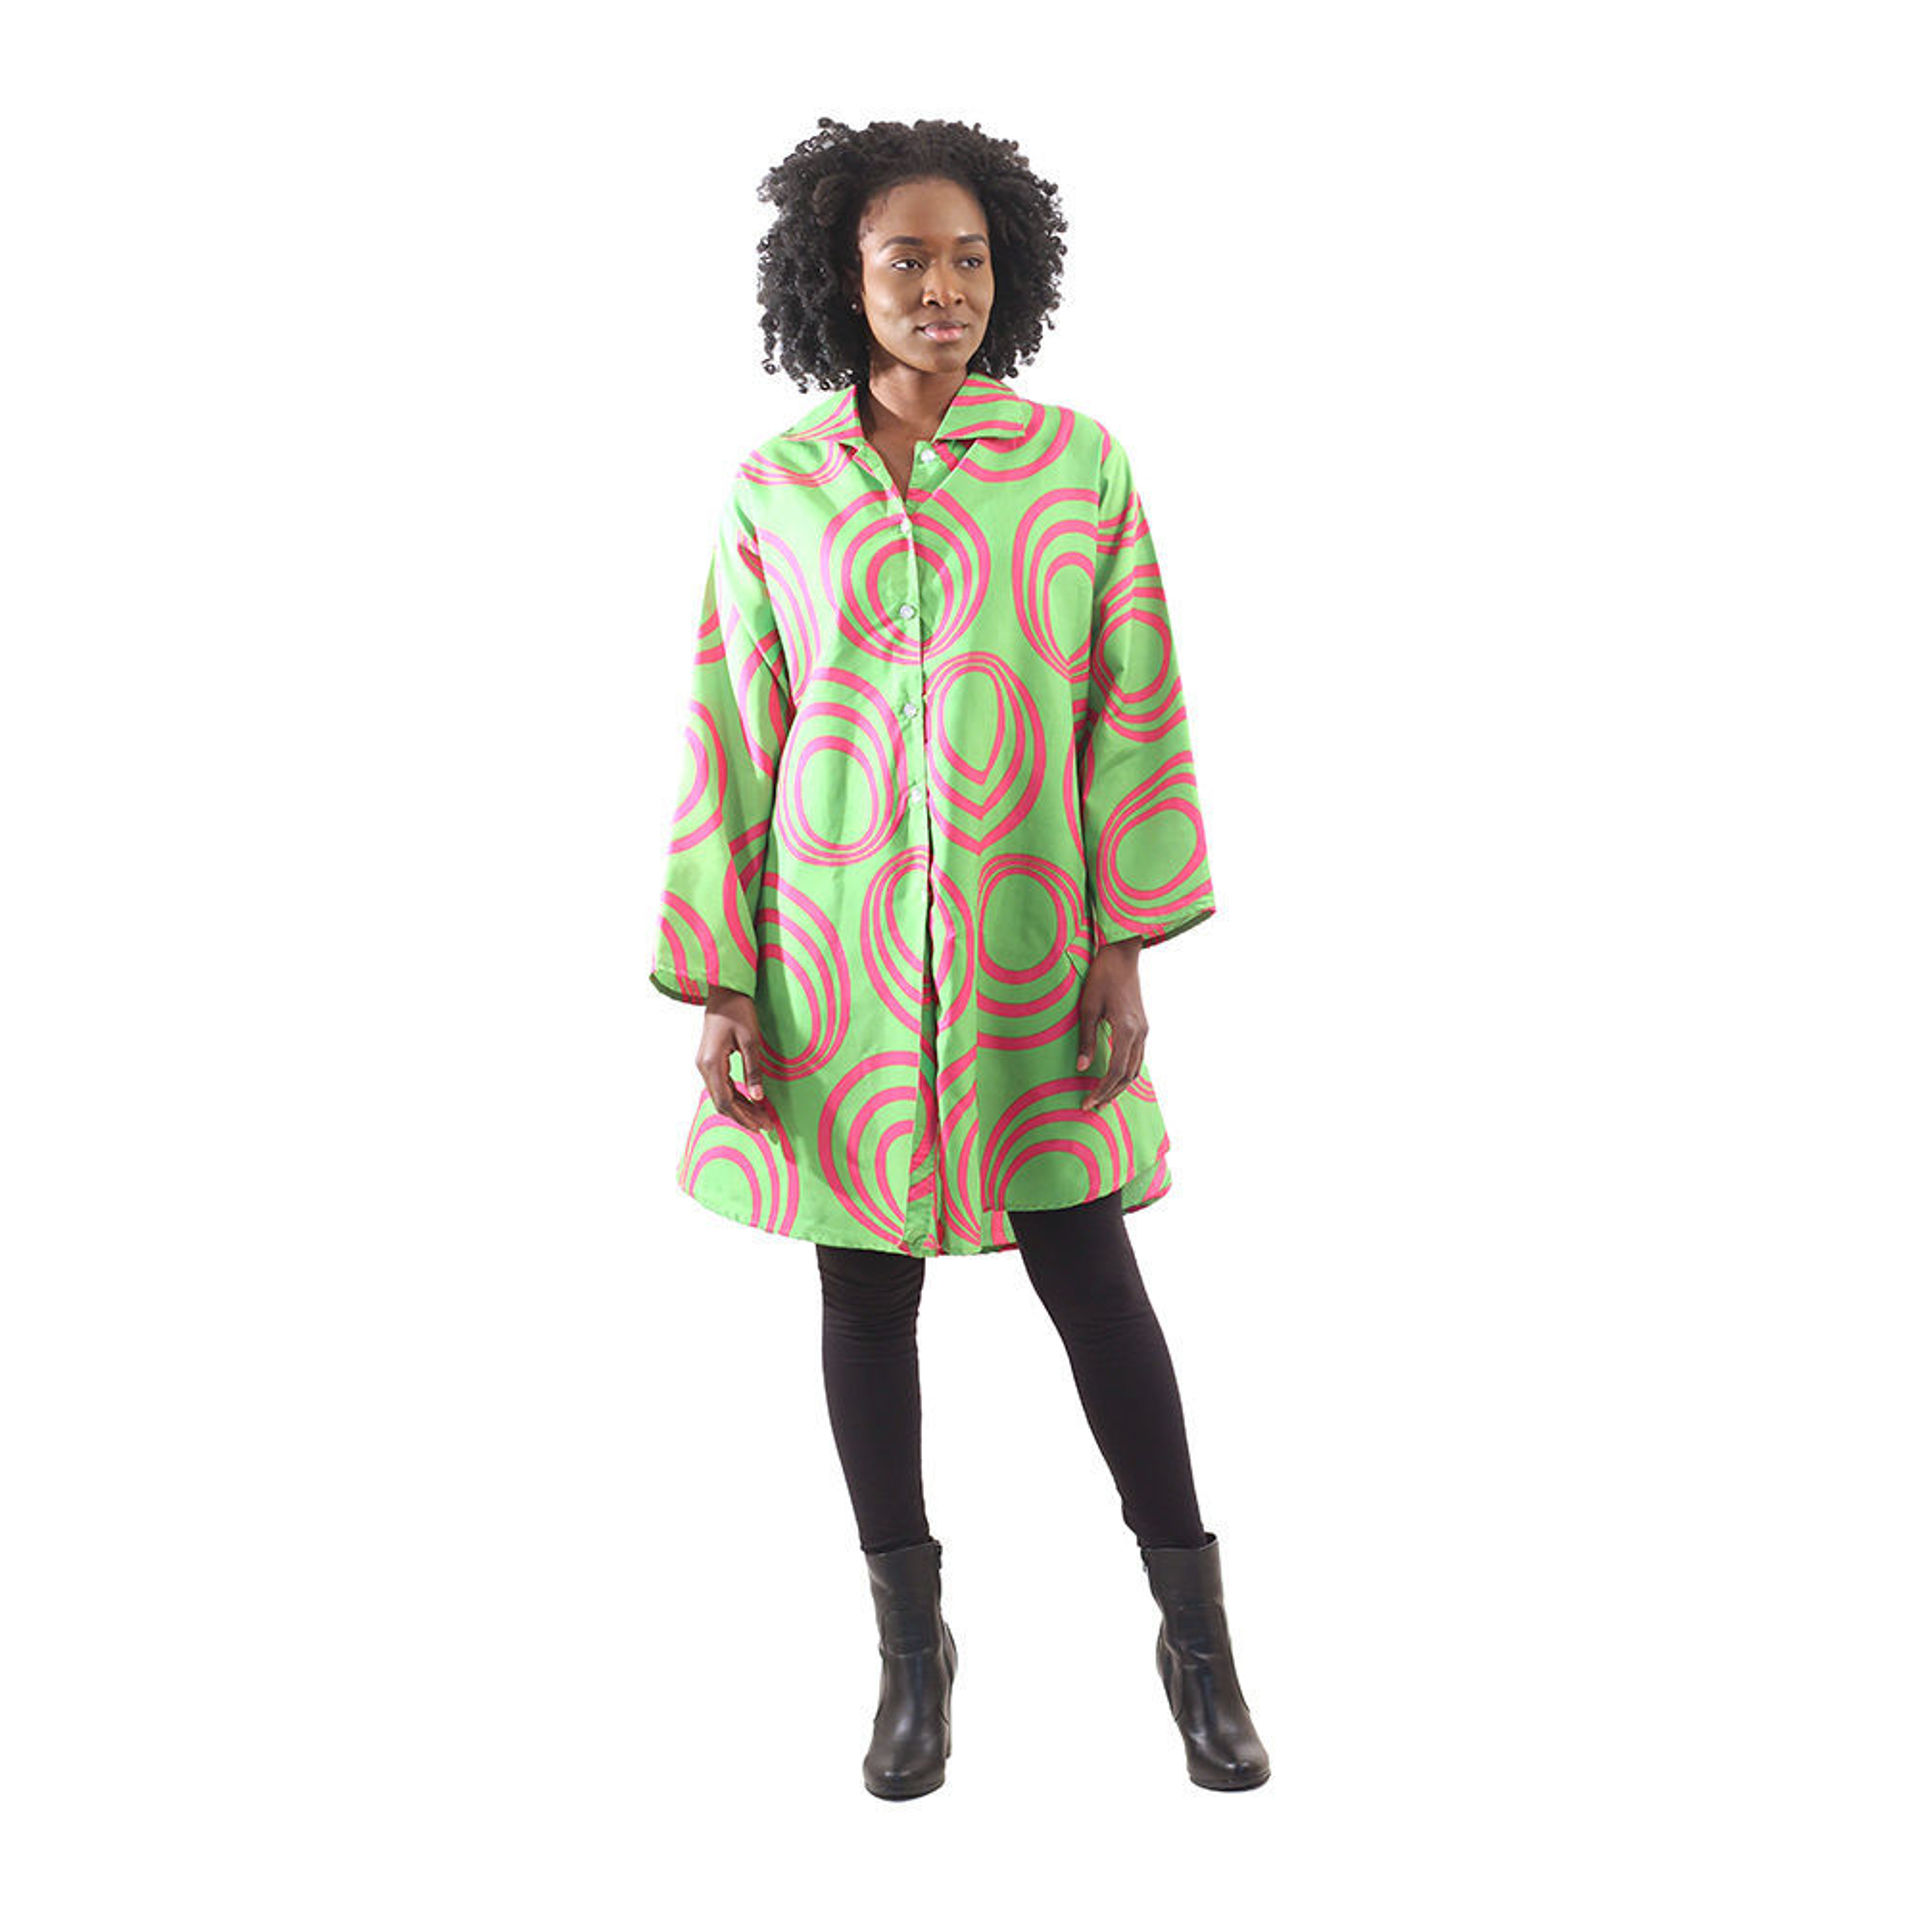 Picture of Pink/Green Hoop Print Button Shirt